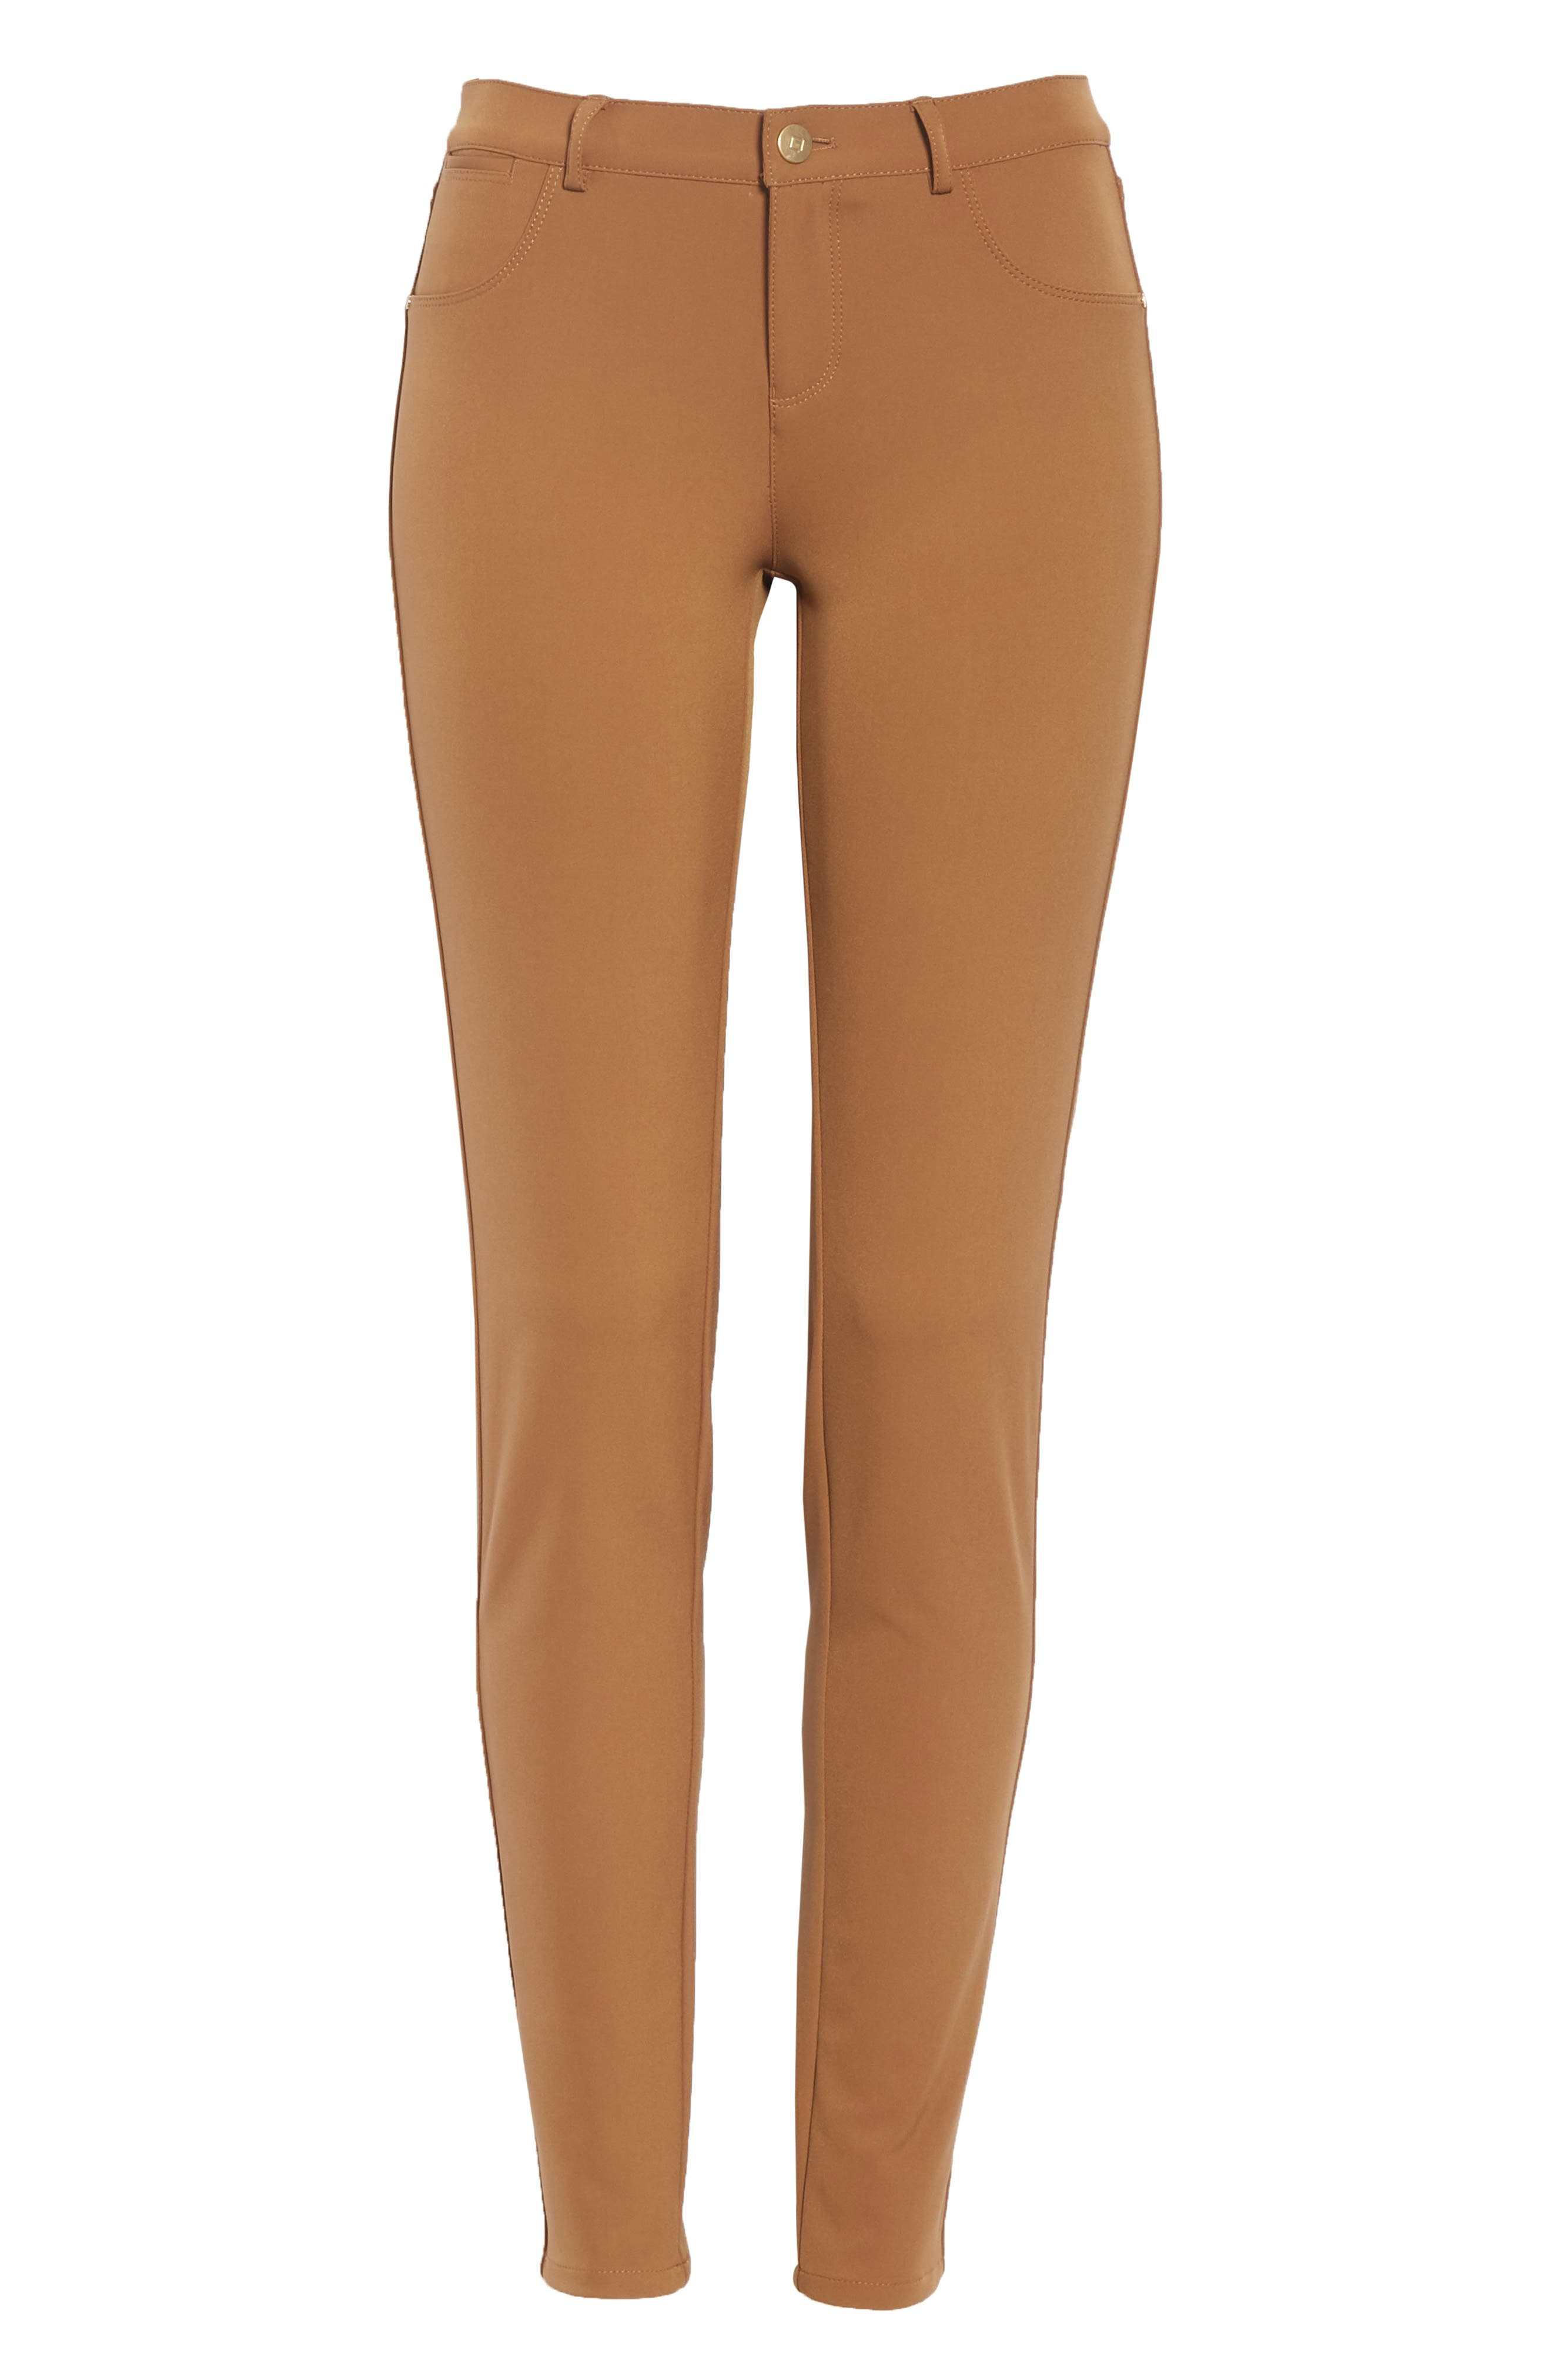 Mercer Acclaimed Stretch Skinny Pants,                             Alternate thumbnail 7, color,                             MAPLE